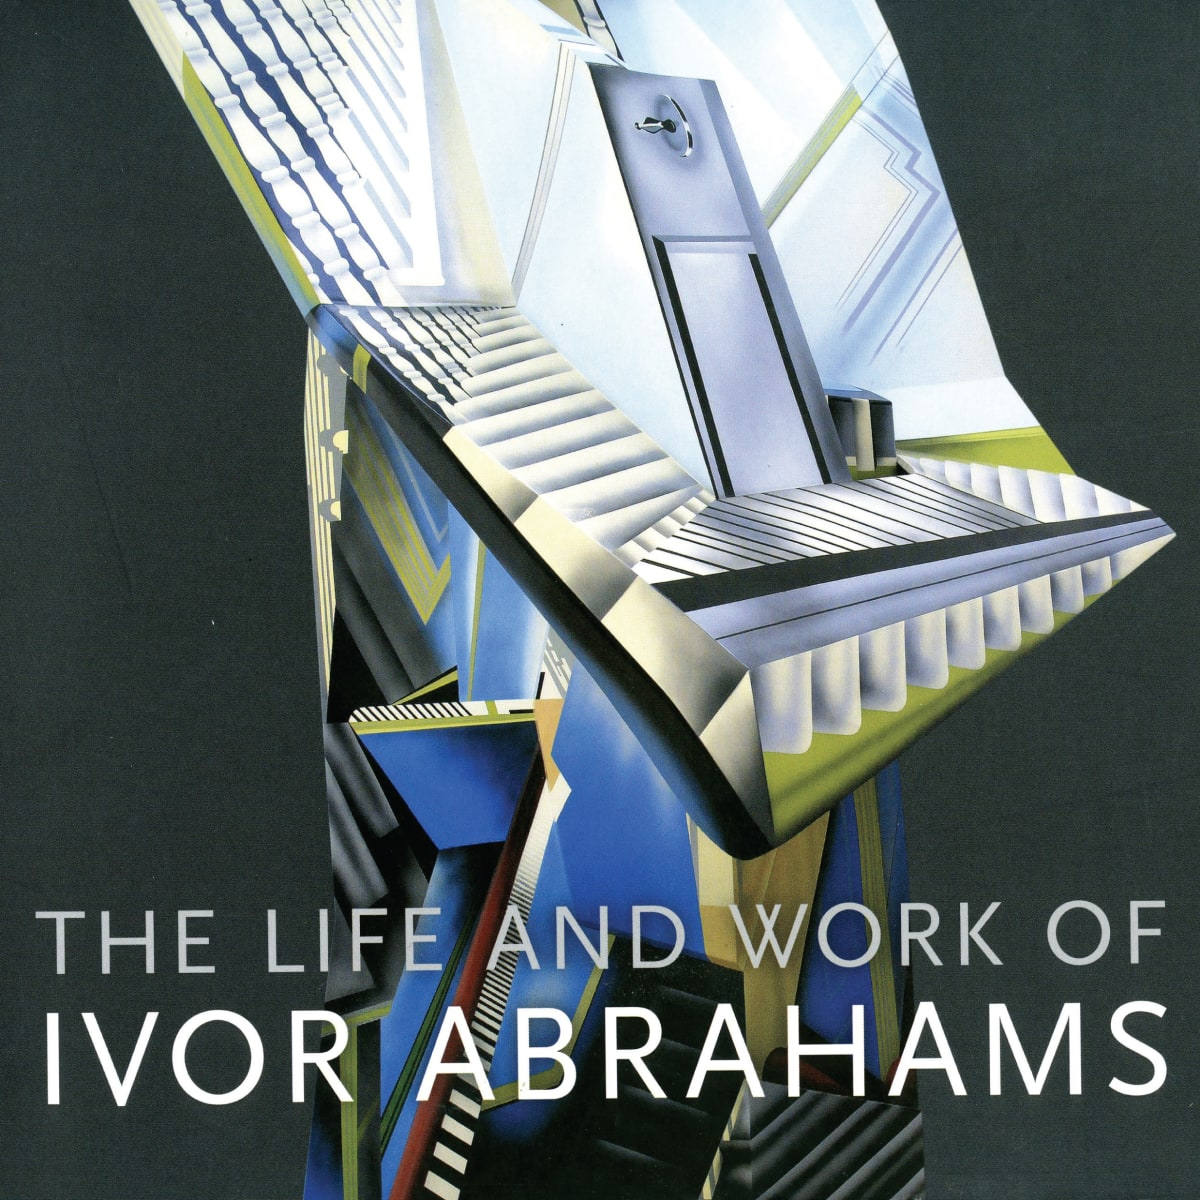 THE LIFE AND WORK OF IVOR ABRAHAMS